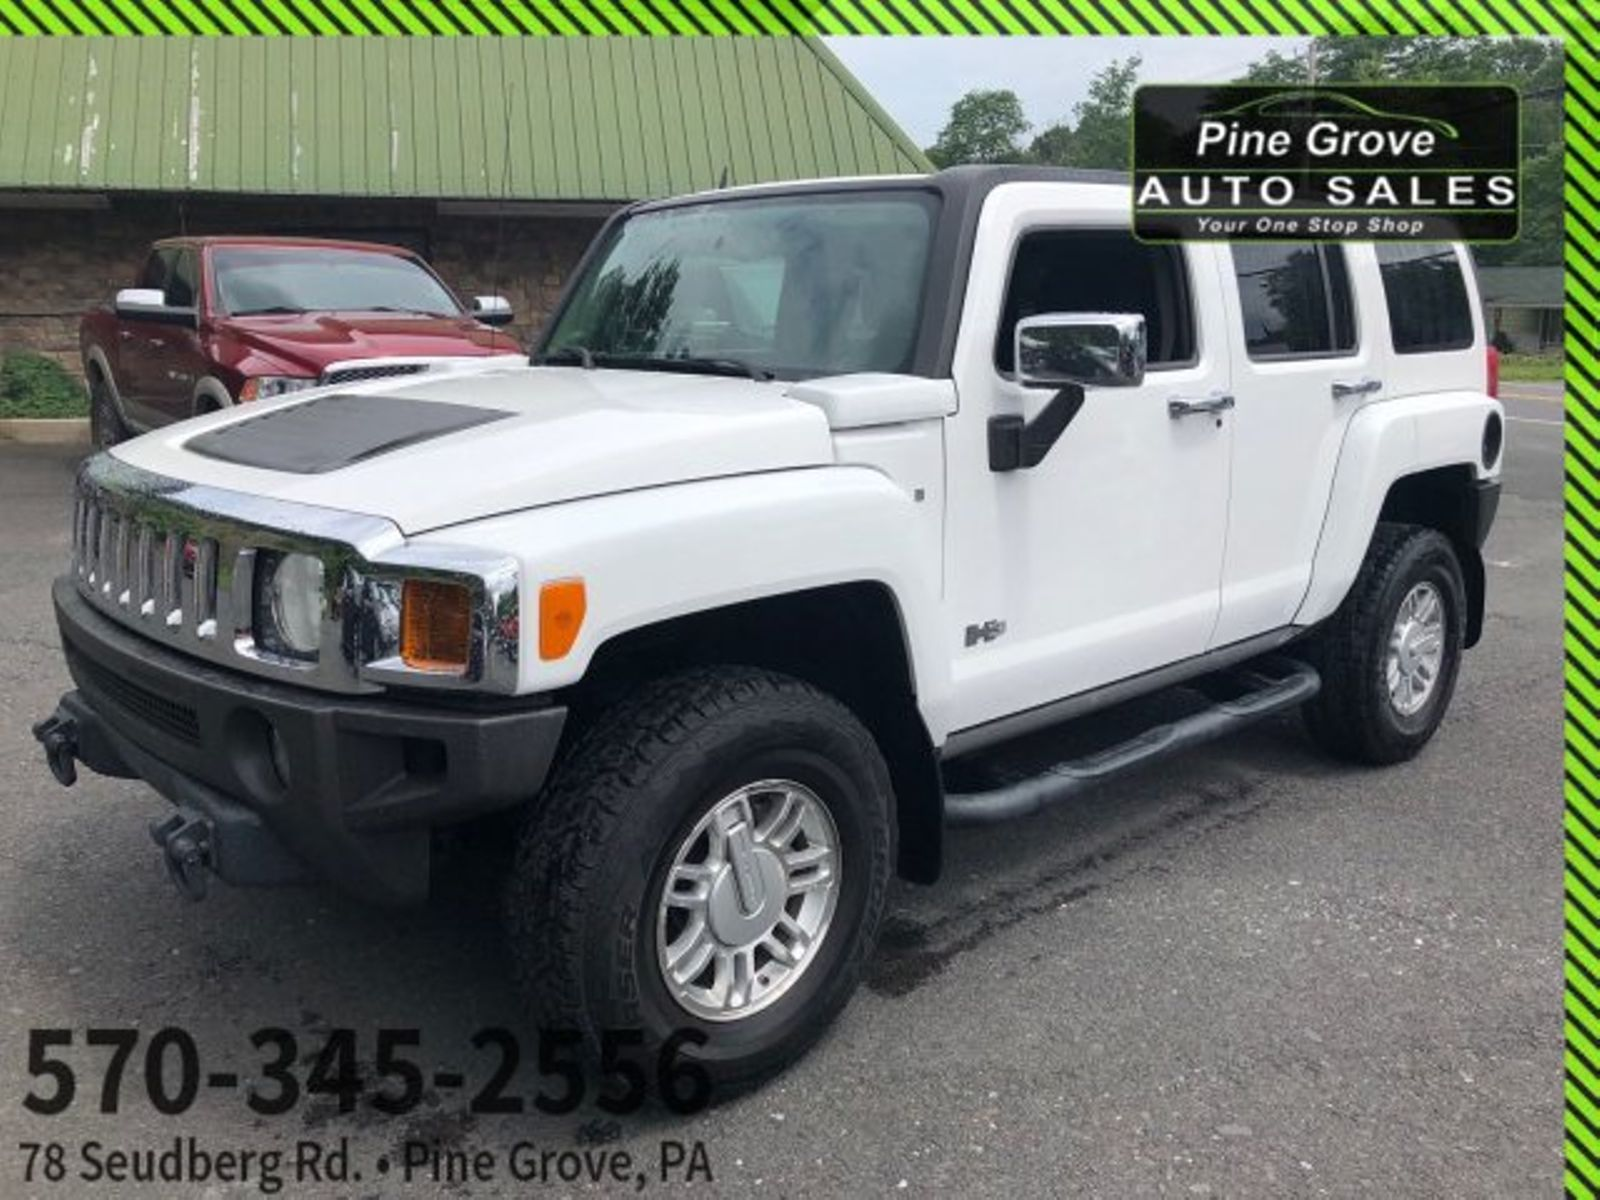 2007 Hummer H3 SUV | Pine Grove, PA | Pine Grove Auto Sales in Pine ...